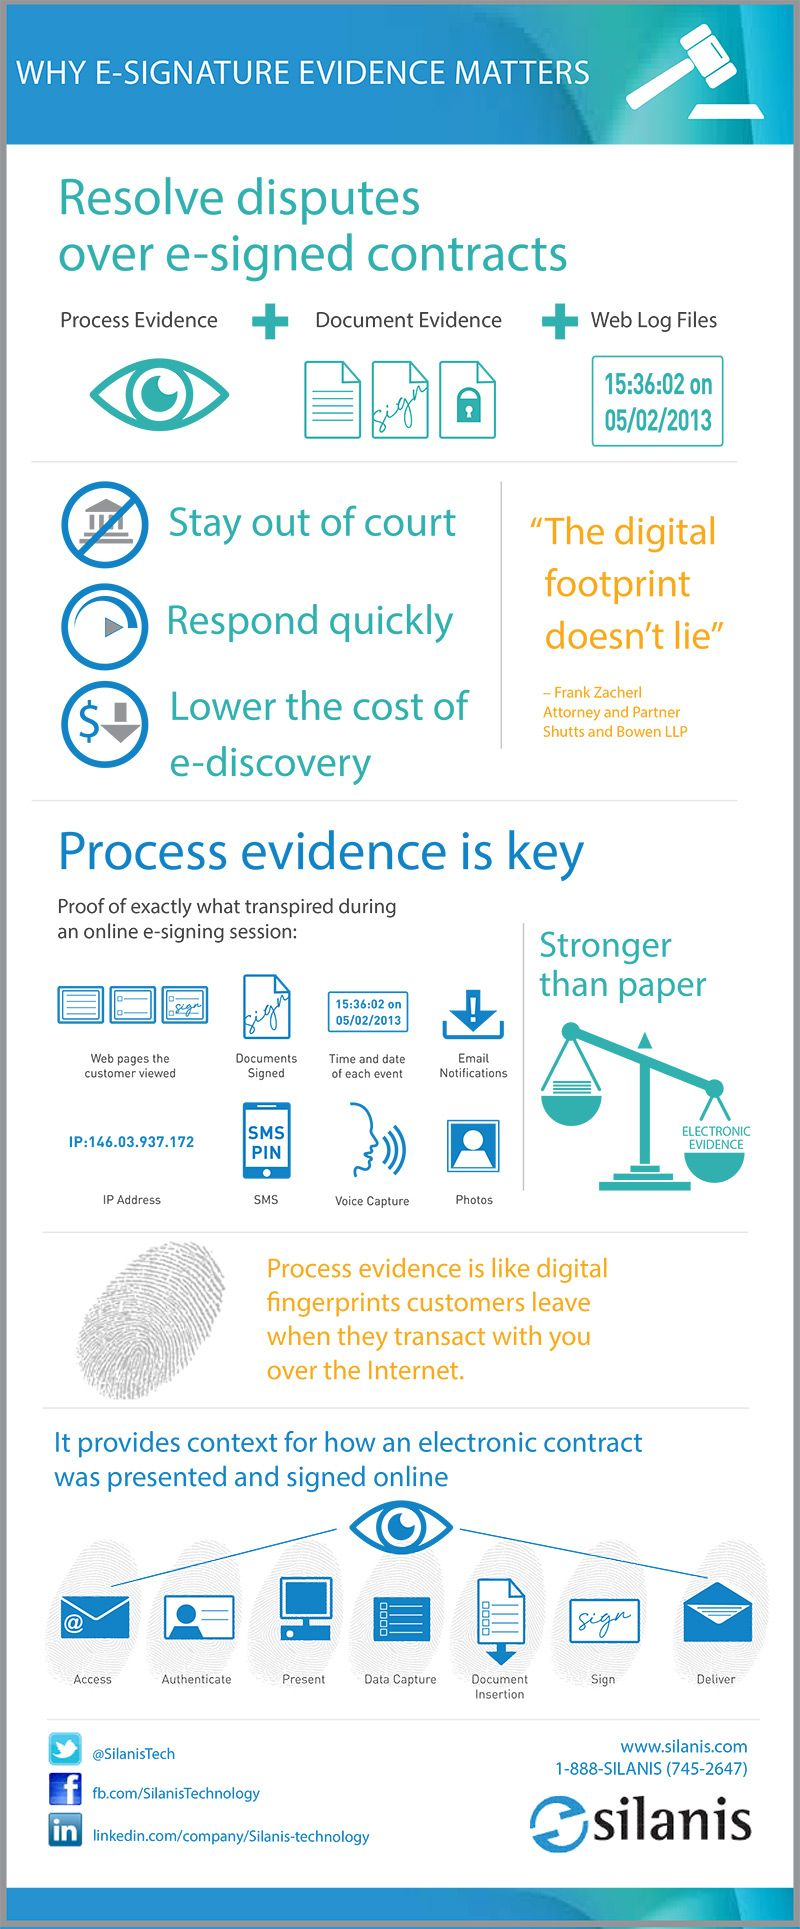 To Settle Confusion Around The Legality Of E Signatures Silanis Has Created An Infographic Around How And Why E Signature Evidence Matters Citing Resources Fo